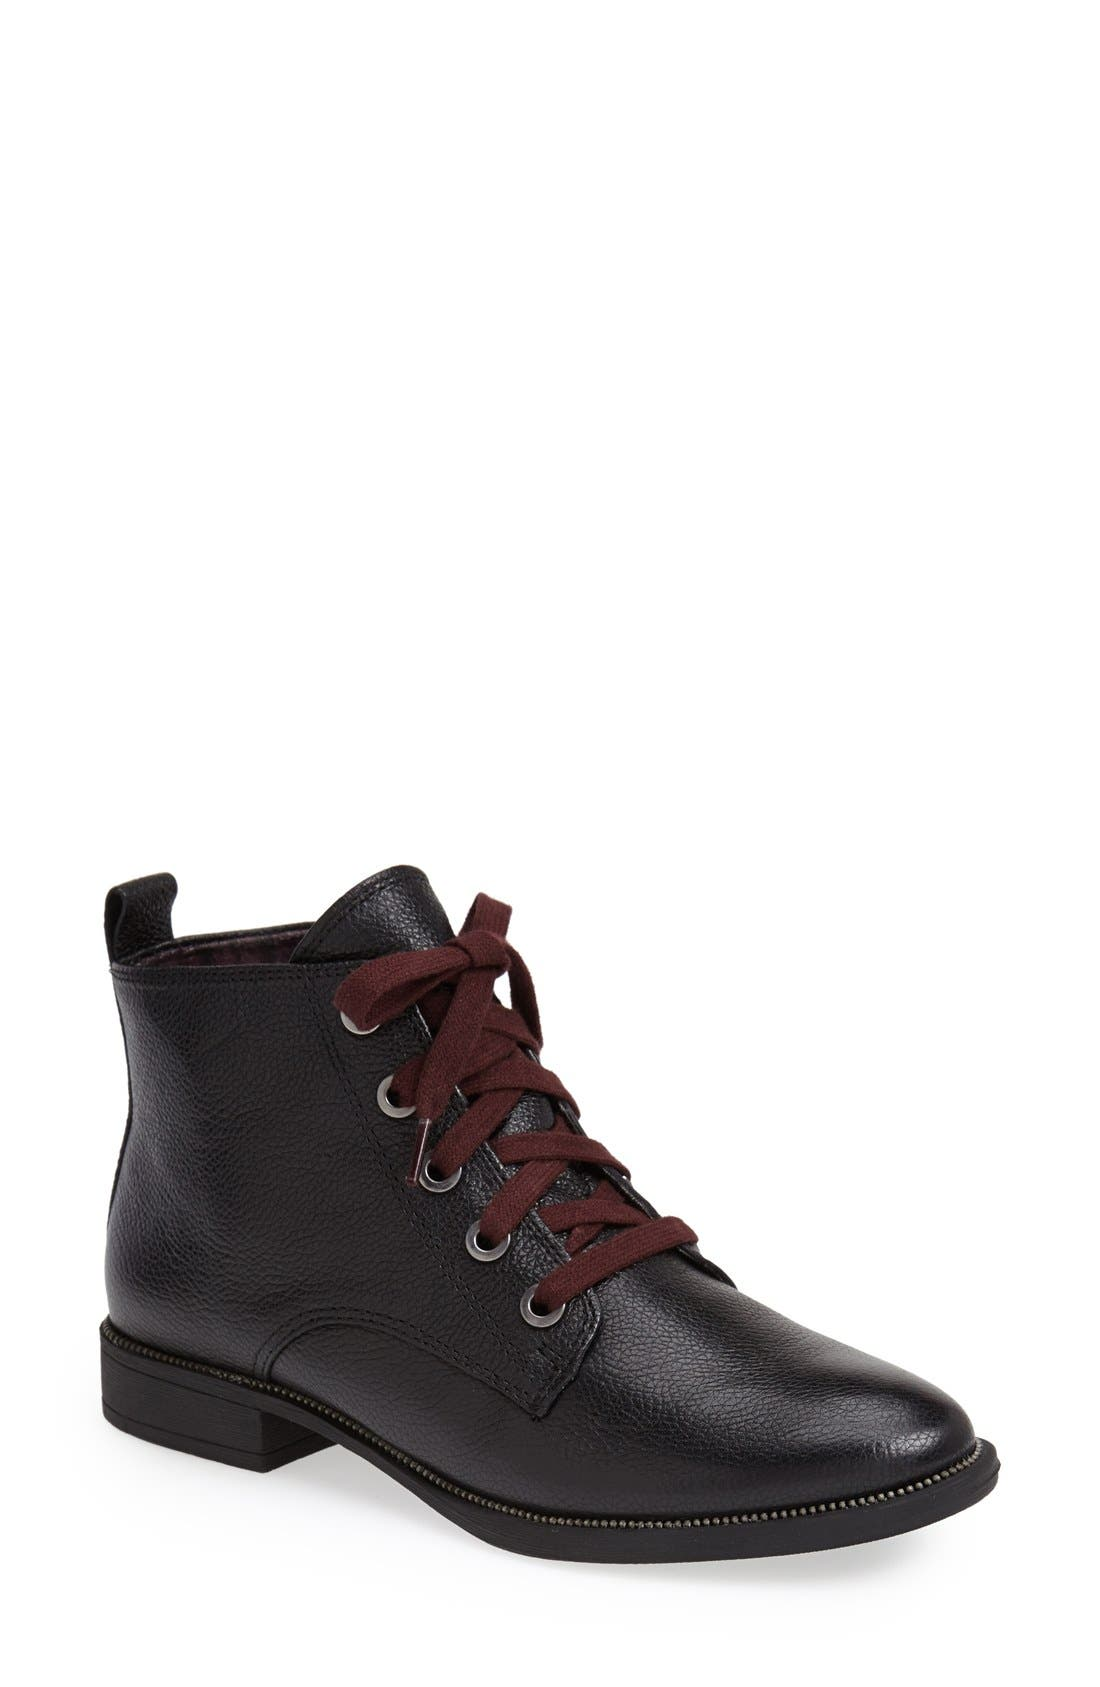 Alternate Image 1 Selected - Circus by Sam Edelman 'Charlie' Boot (Women)